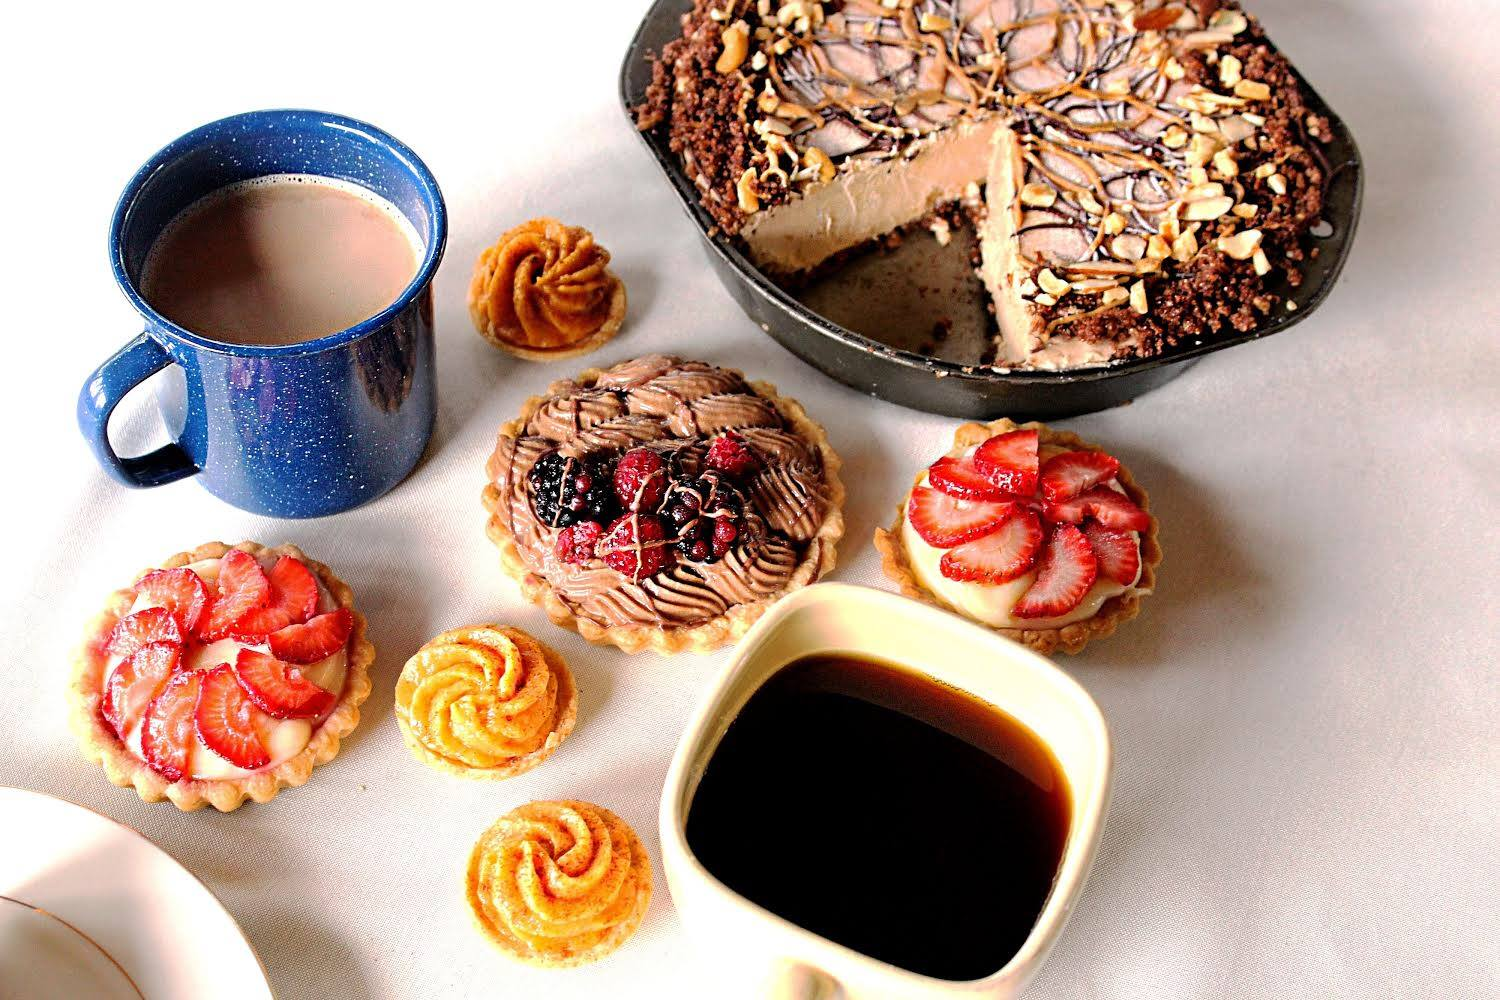 assortment of pastries and peanut butter pie with two mugs filled with coffee